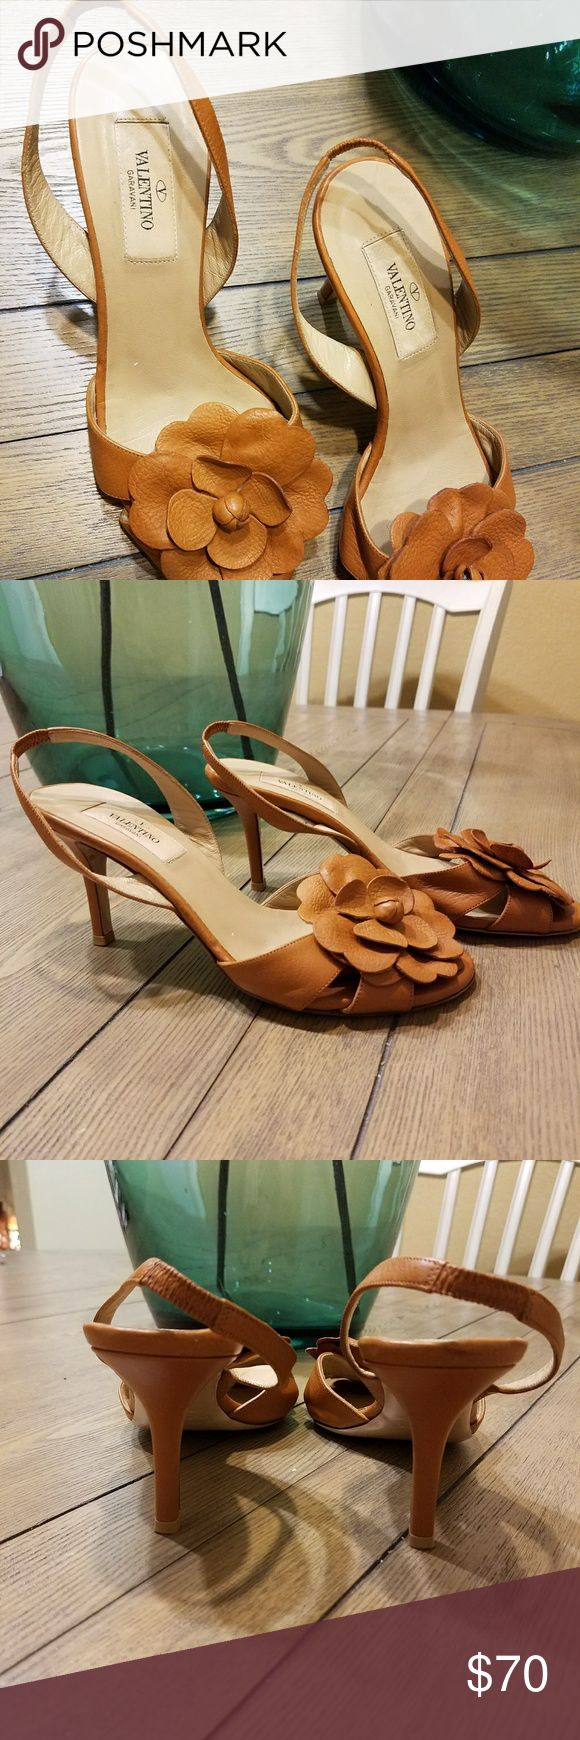 Valentino flower motif heels Beautiful Valentino flower motif heel. In very good condition. Only has two small scrapes under heel which is shown in last picture. Not visible when wearing them. Valentino Shoes